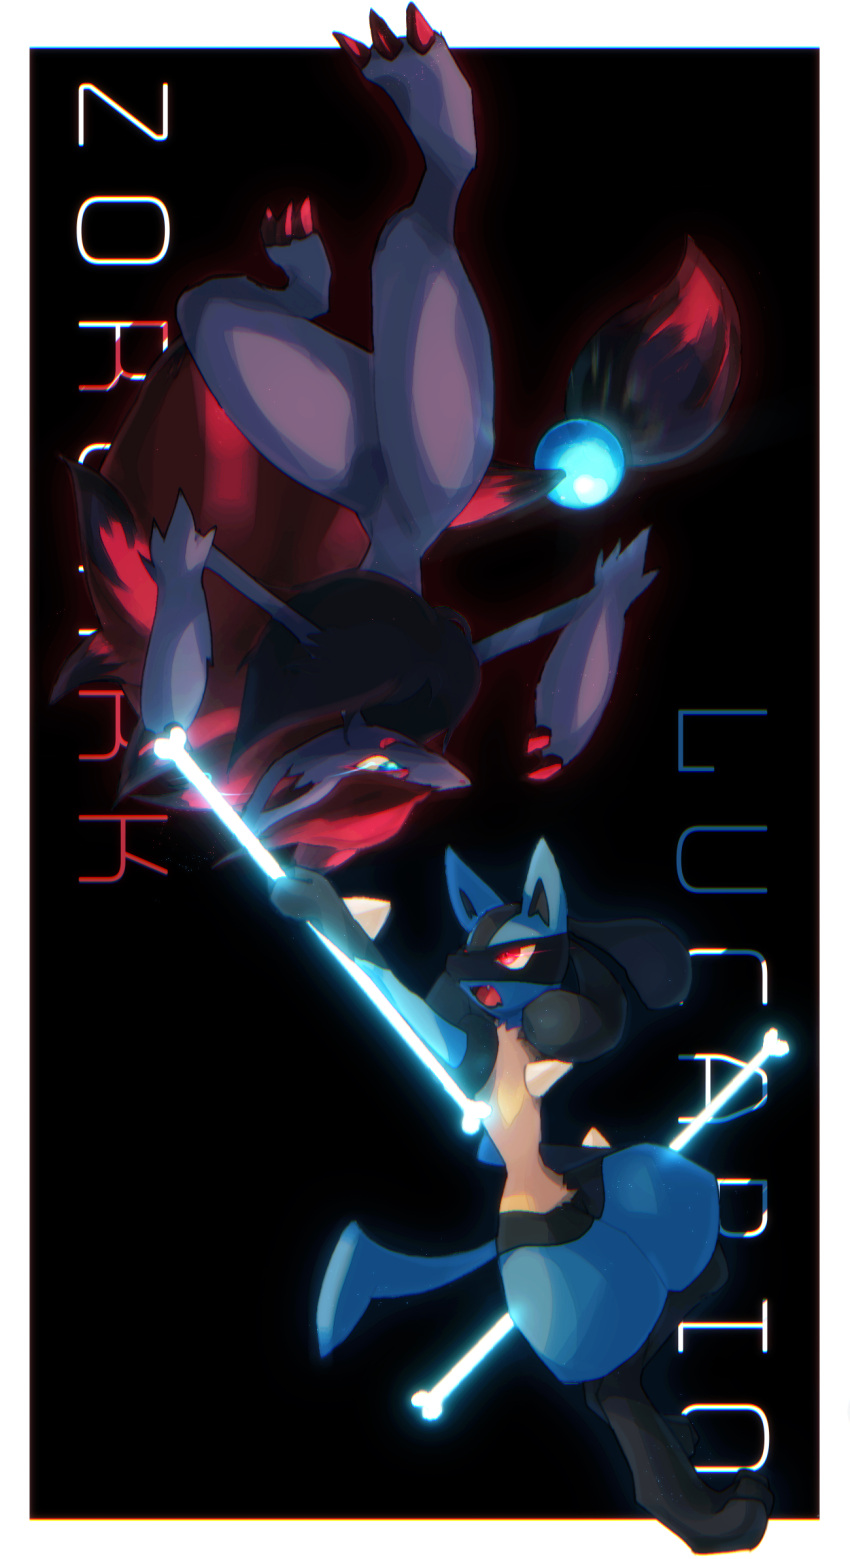 2boys animal_ears arm_up black_background black_fur black_hair blue_eyes blue_fur body_fur bone border character_name chromatic_aberration claws closed_mouth commentary_request english_commentary english_text eye_contact fangs fighting furry gen_4_pokemon gen_5_pokemon glowing grey_fur hands_up happy highres holding holding_bone iogi_(iogi_k) leg_up light_trail long_hair looking_at_another looking_down looking_up lucario male_focus mixed-language_commentary multicolored_hair multiple_boys open_mouth partial_commentary paws pokemon pokemon_(creature) red_eyes redhead rotational_symmetry simple_background smile snout spikes standing standing_on_one_leg symmetry two-tone_hair upside-down very_long_hair white_border wolf_boy wolf_ears yellow_fur zoroark